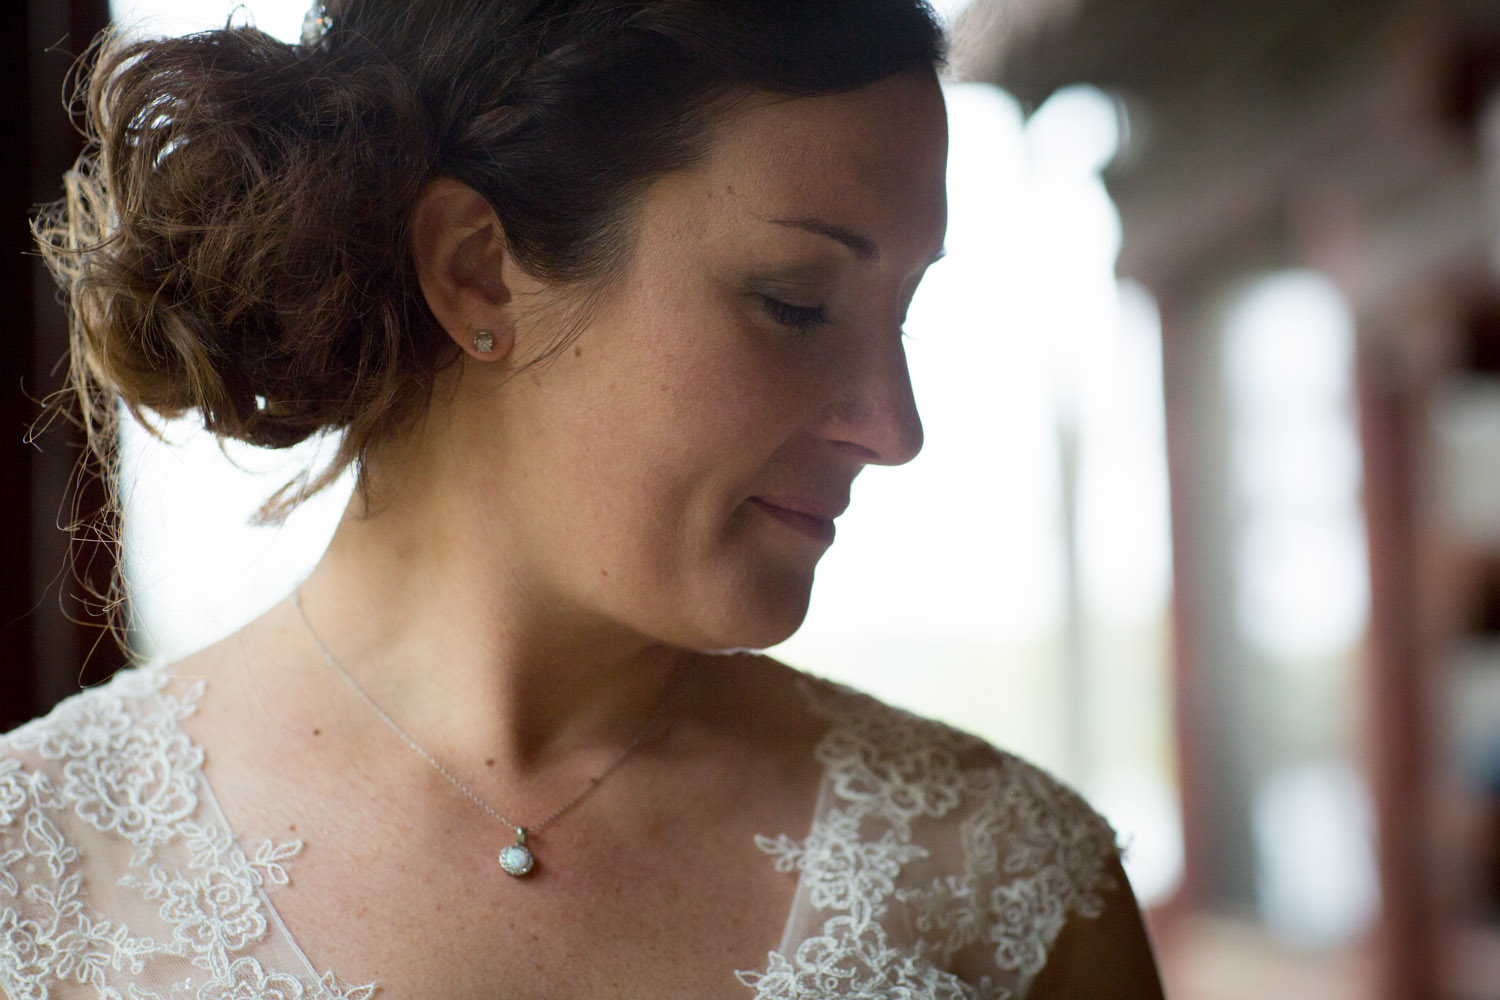 11-cabin-wedding-beautiful-bride-bridal-portrait-lacy-gown-opal-necklace-dark-and-moody-mahonen-photography